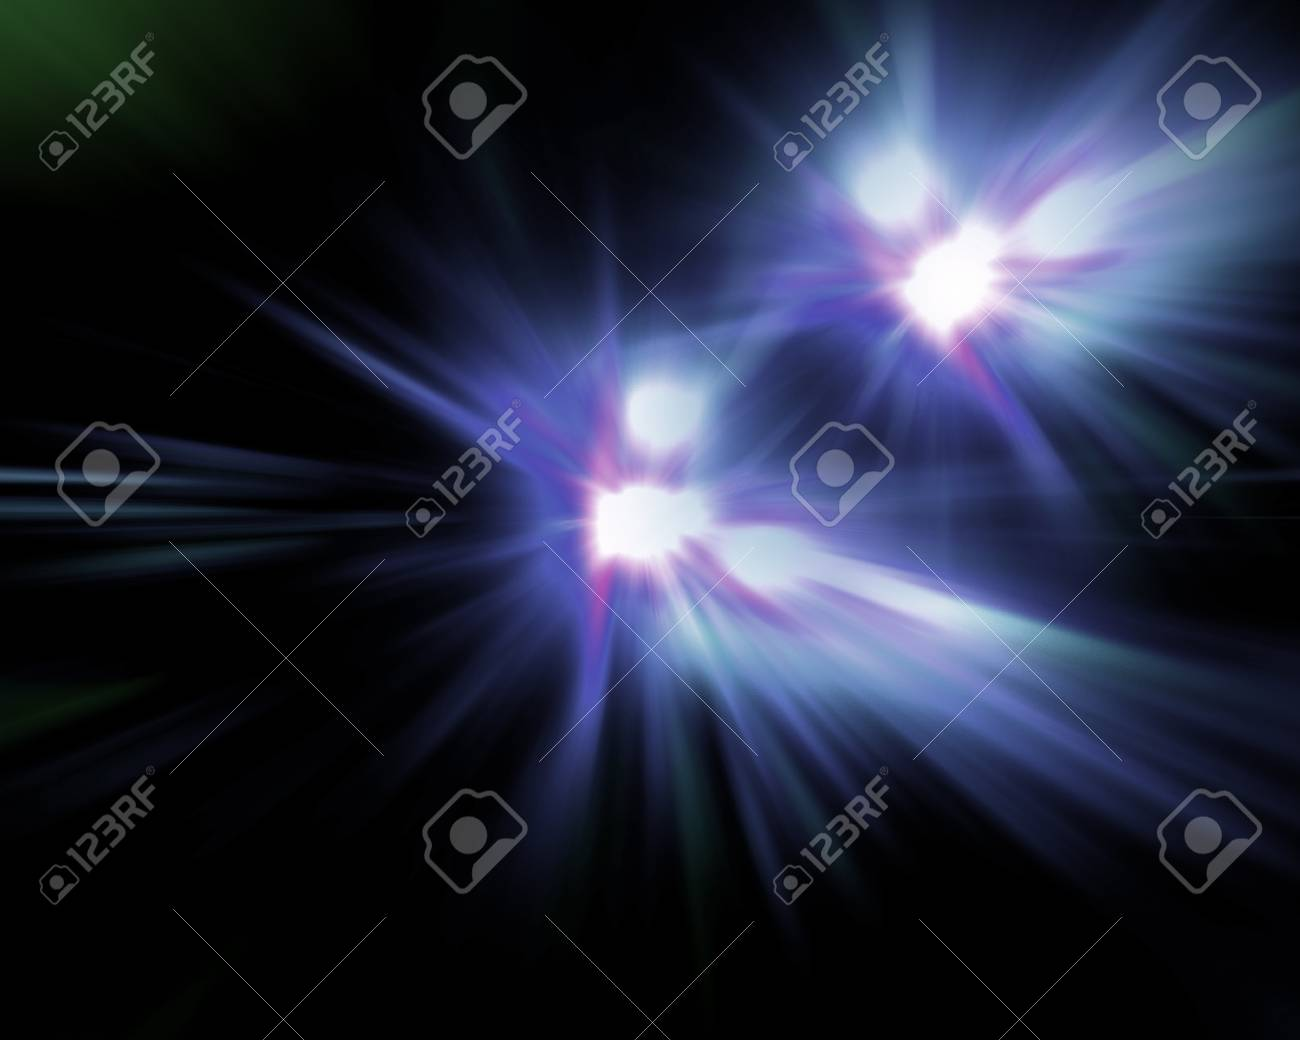 Abstract background with beams Stock Photo - 8669988